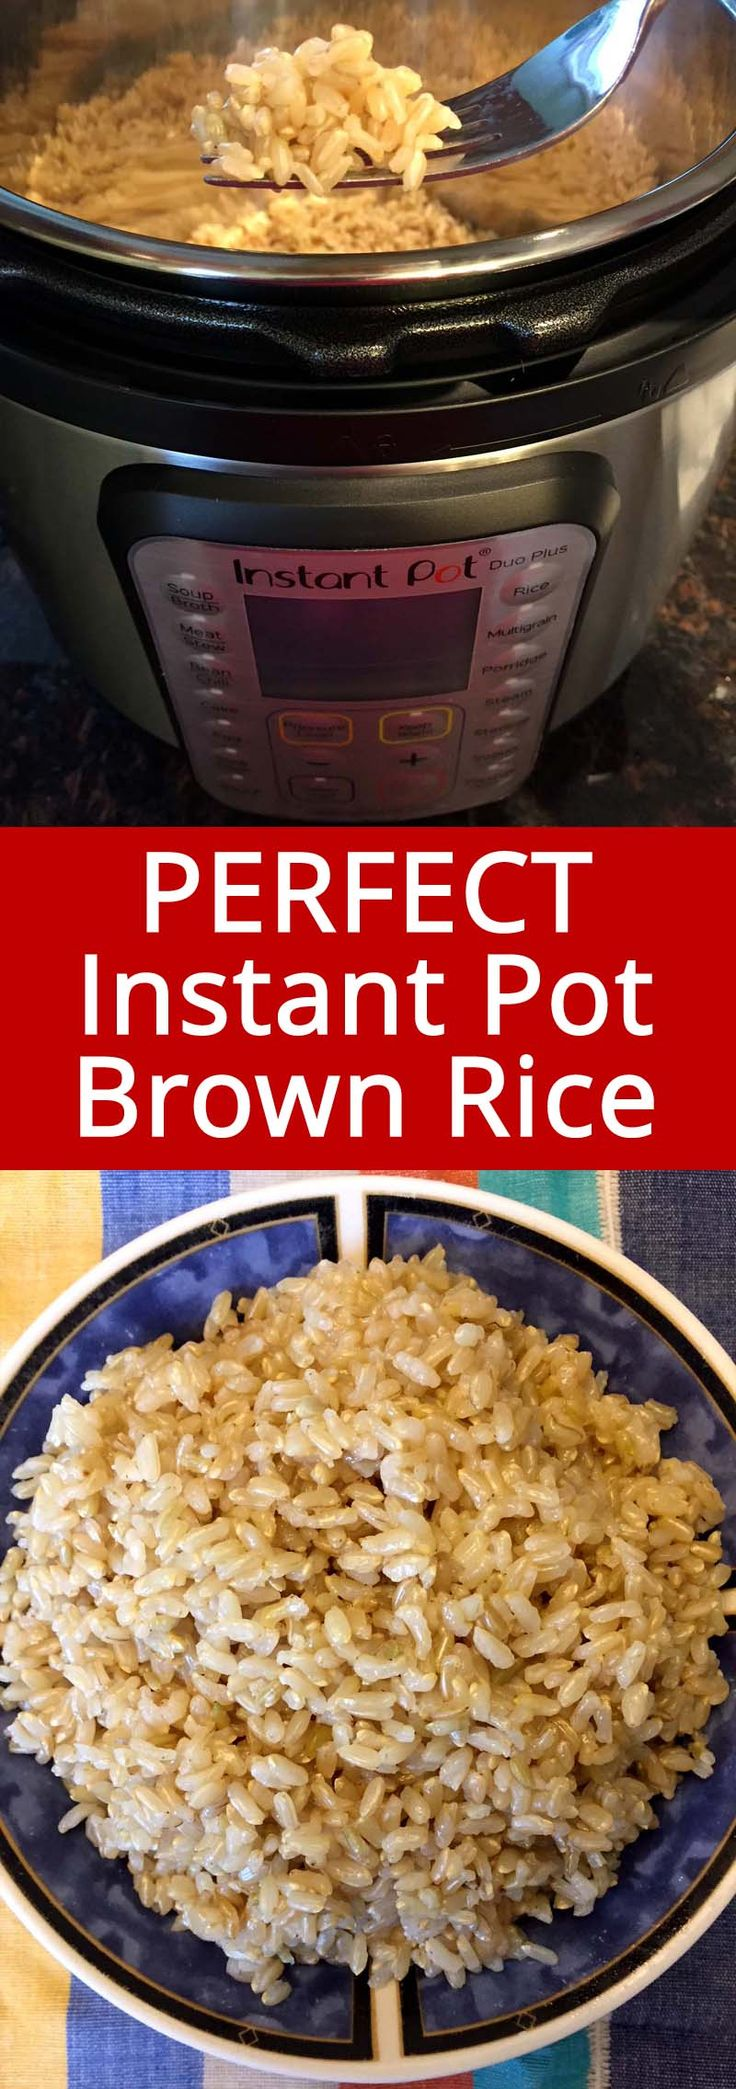 This recipe makes perfect Instant Pot brown rice! So easy and the rice comes out…